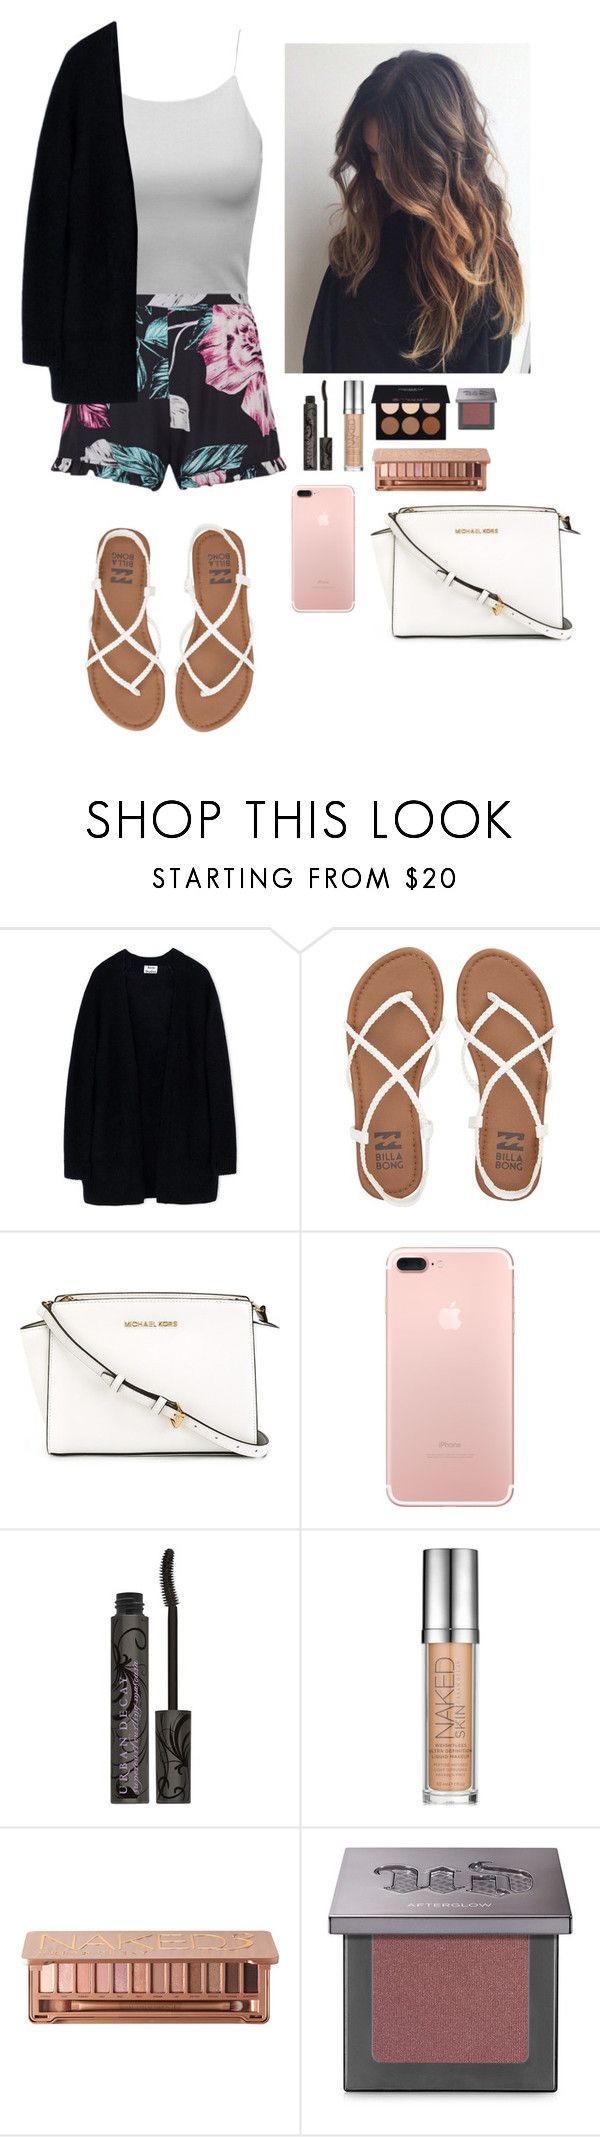 """""""Sydney opera house/dinner Monday May 29 summer 7Australia 1"""" by soccerstar913 ❤ liked on Polyvore featuring Topshop, Acne Studios, Billabong, MICHAEL Michael Kors, Urban Decay and Anastasia Beverly Hills"""